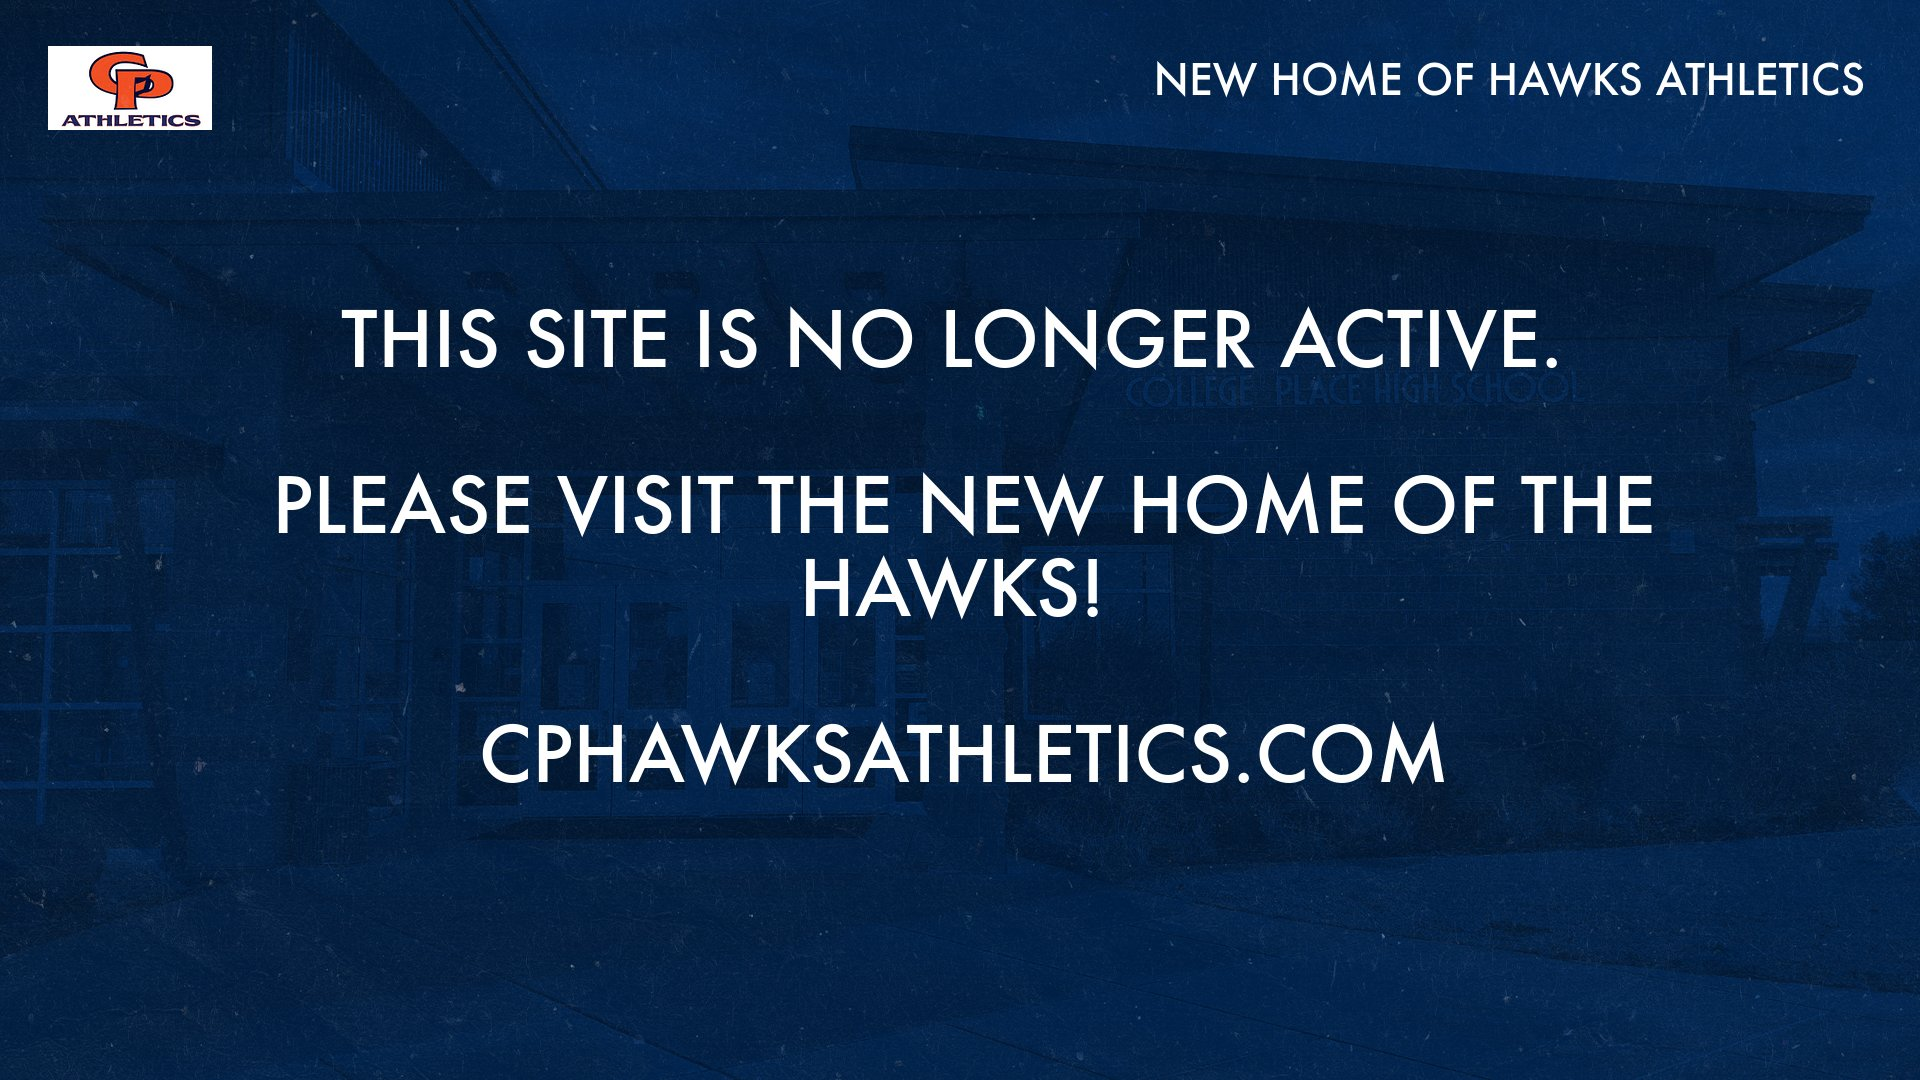 this site is no longer active. please visit cphawksathletics.com